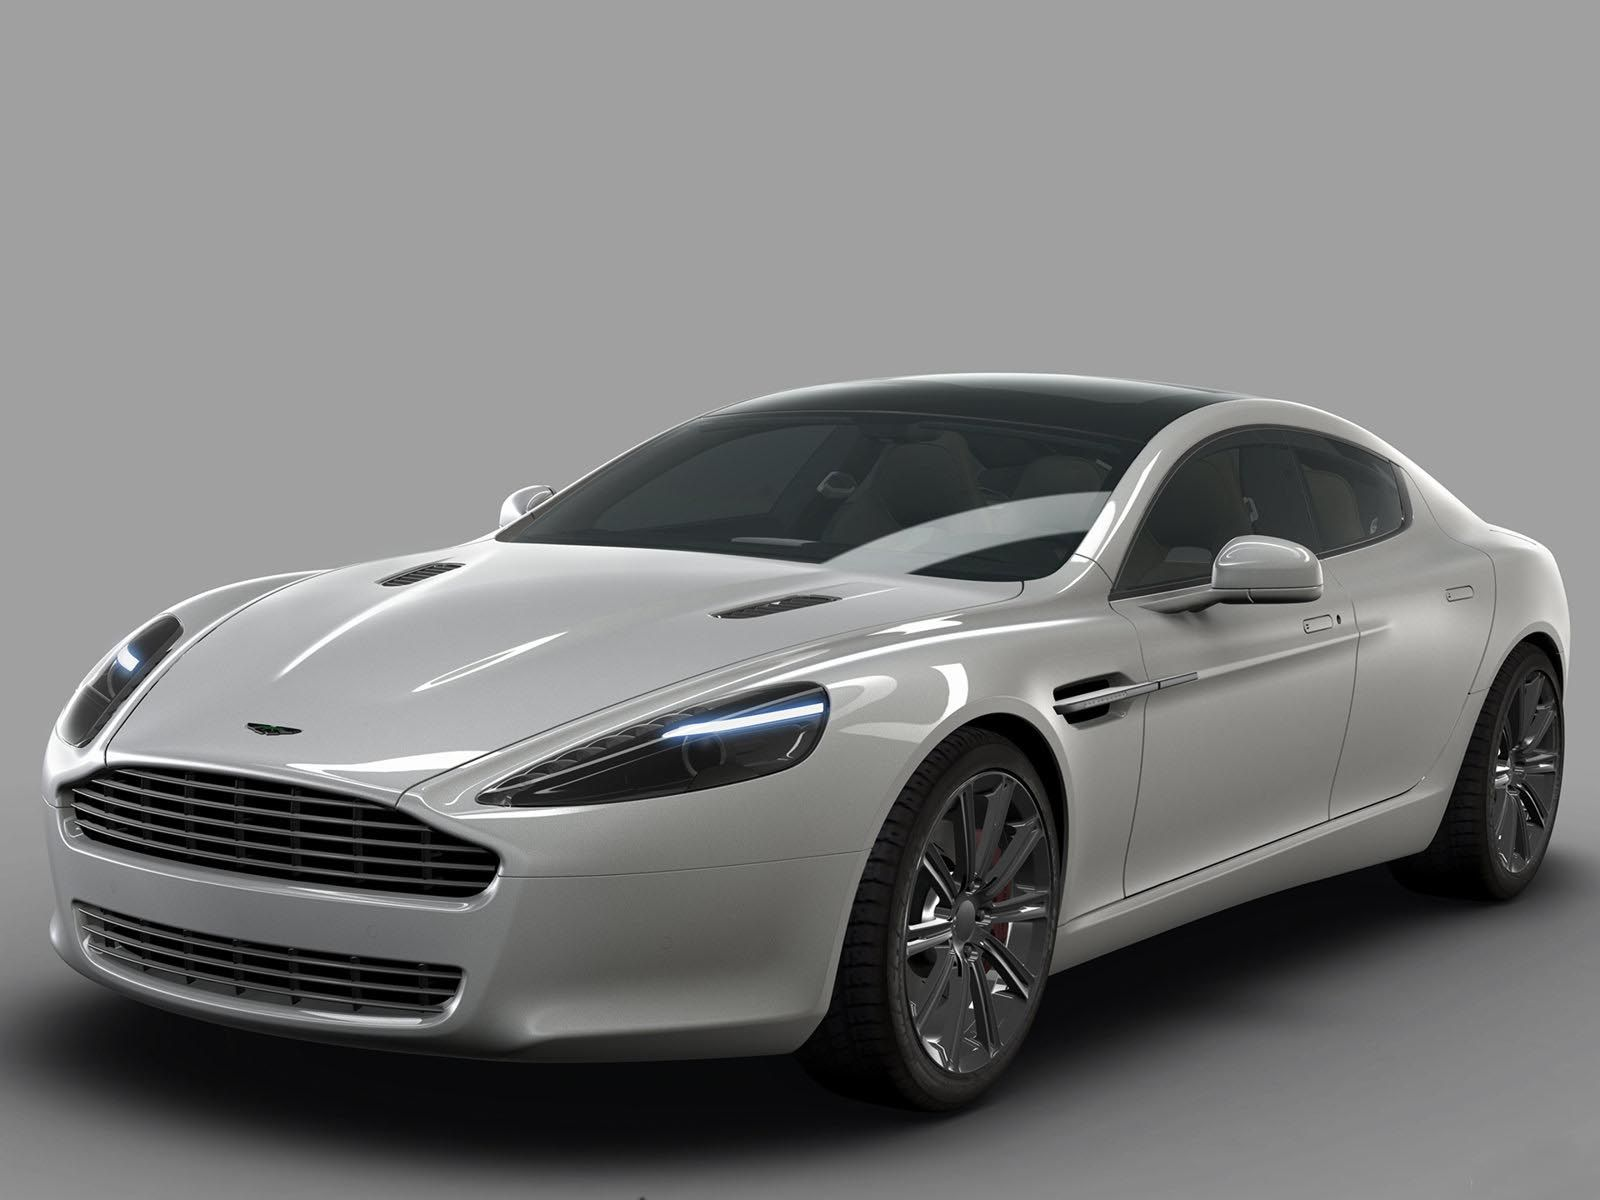 Aston Martin Rapide Coupe With Four Doors Aston Martin Rapide Aston Martin Cars Aston Martin